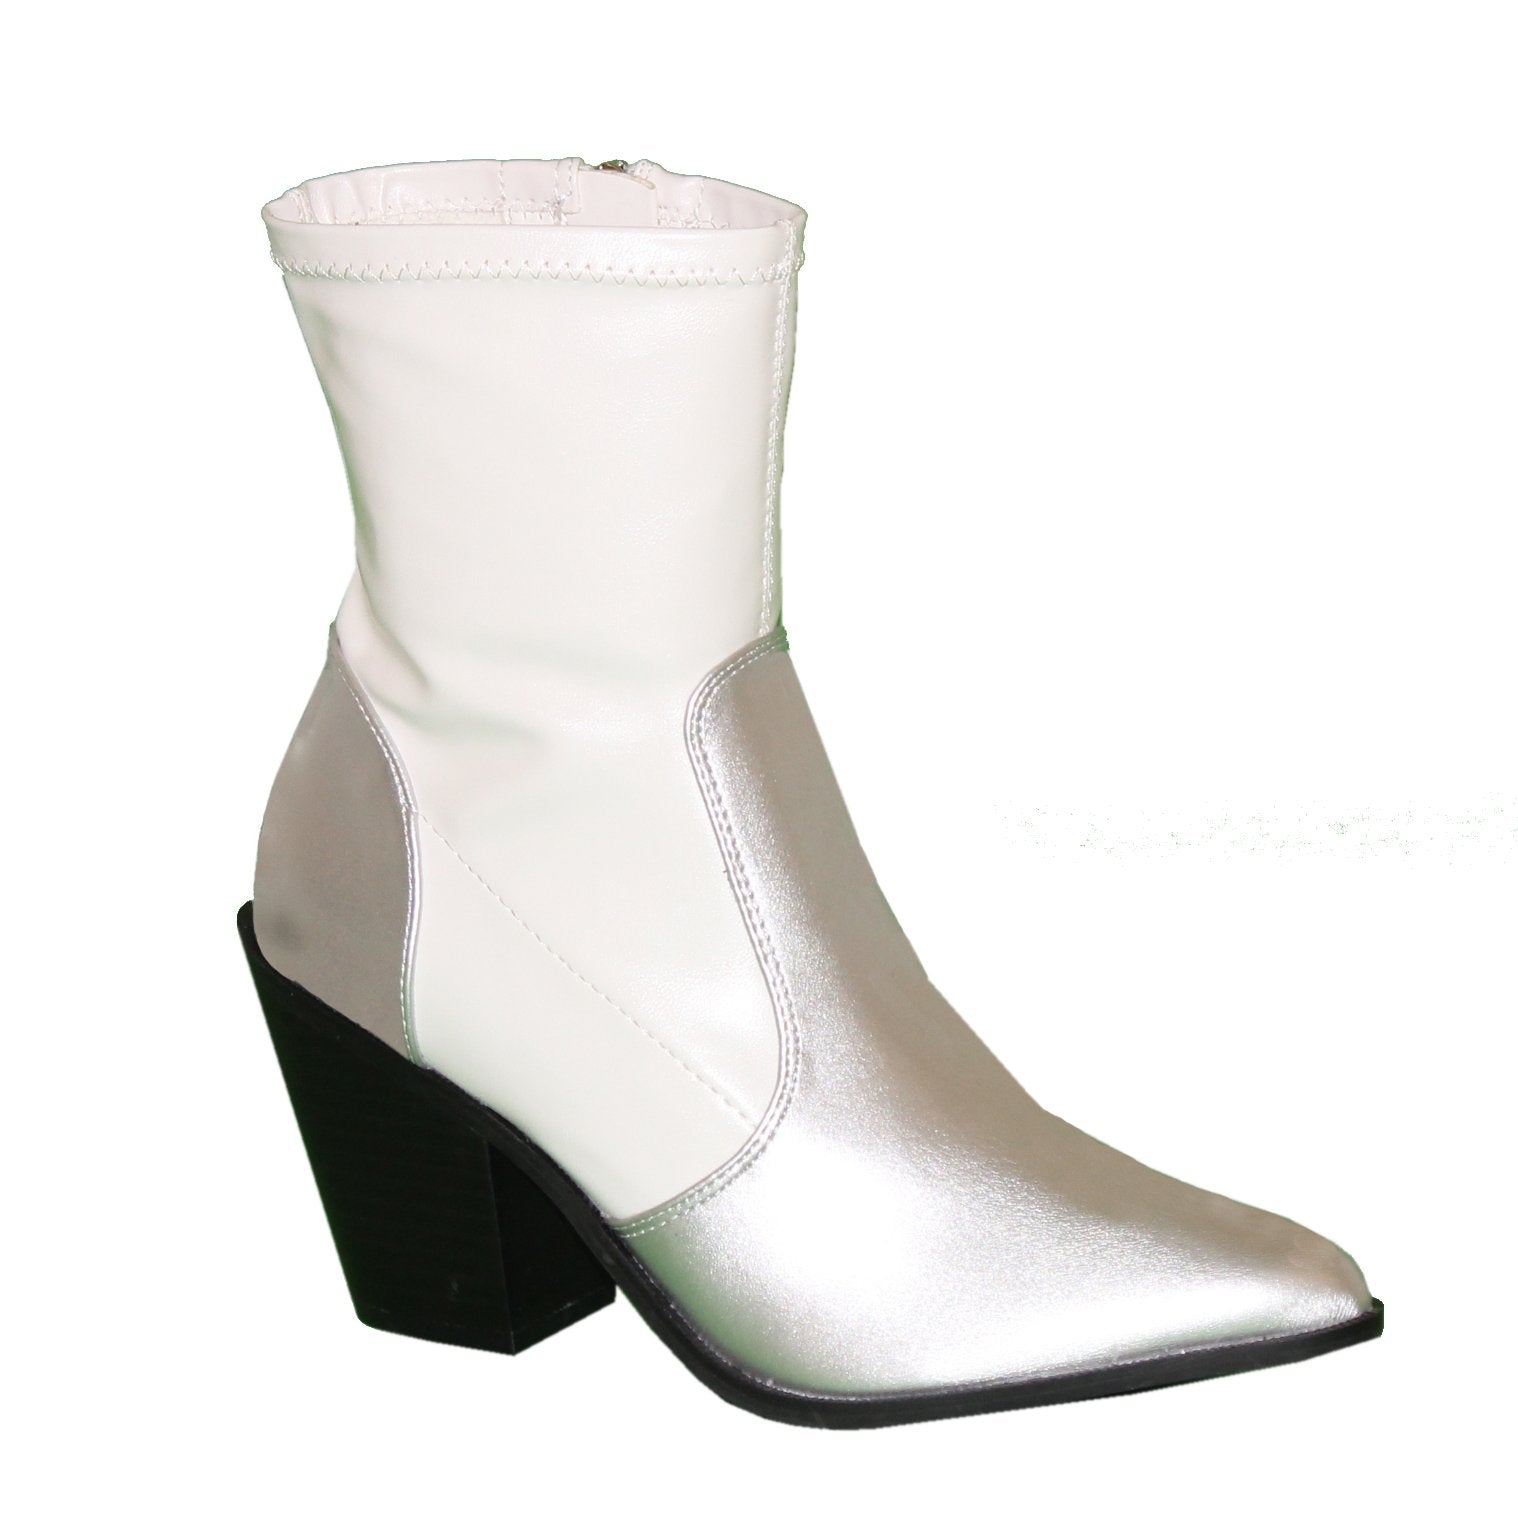 Western-inspired above the ankle boot that features a contrasting vegan leather silver upper that meets the stretch topline in white. An inside zip closure entry lifted by an angled faux stacked block heel.